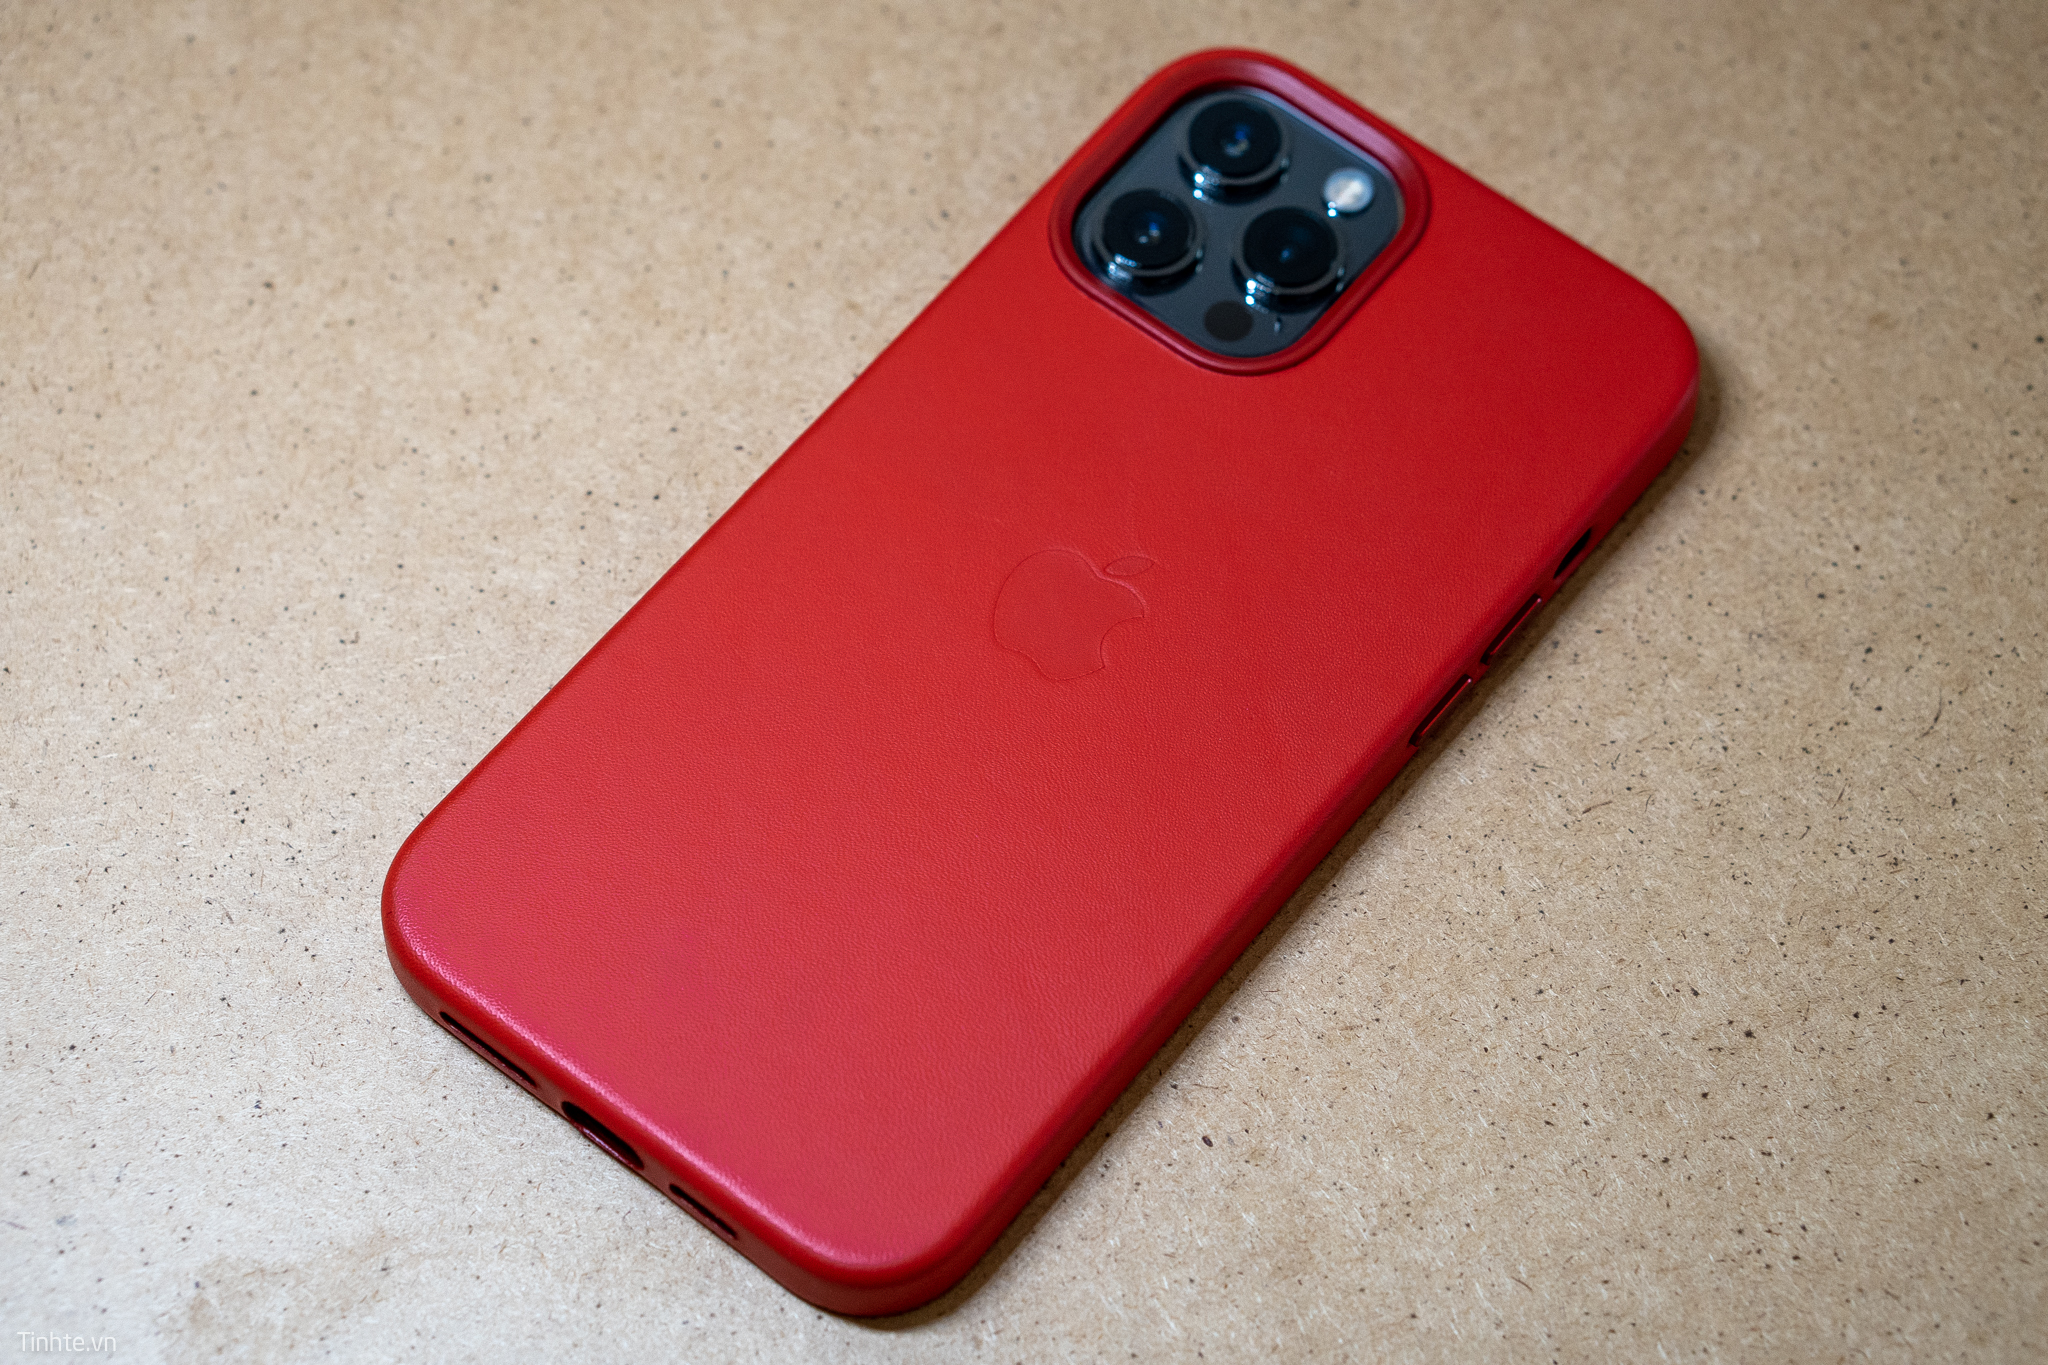 5272991_apple-red-leather-case--11.jpg